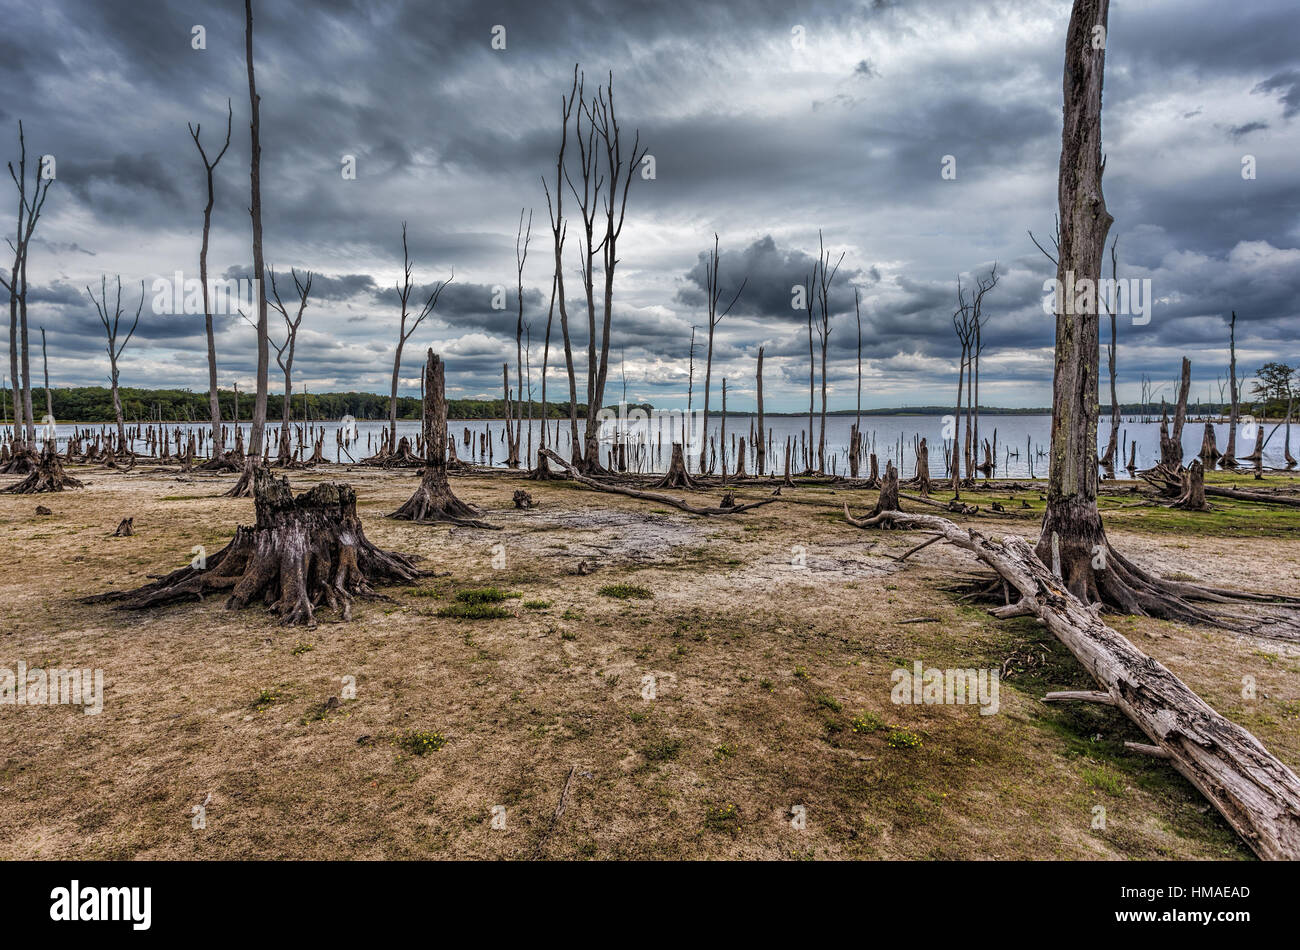 Dead Trees in the forest around a lake with low water levels. This photo depicts drought conditions and Climate - Stock Image